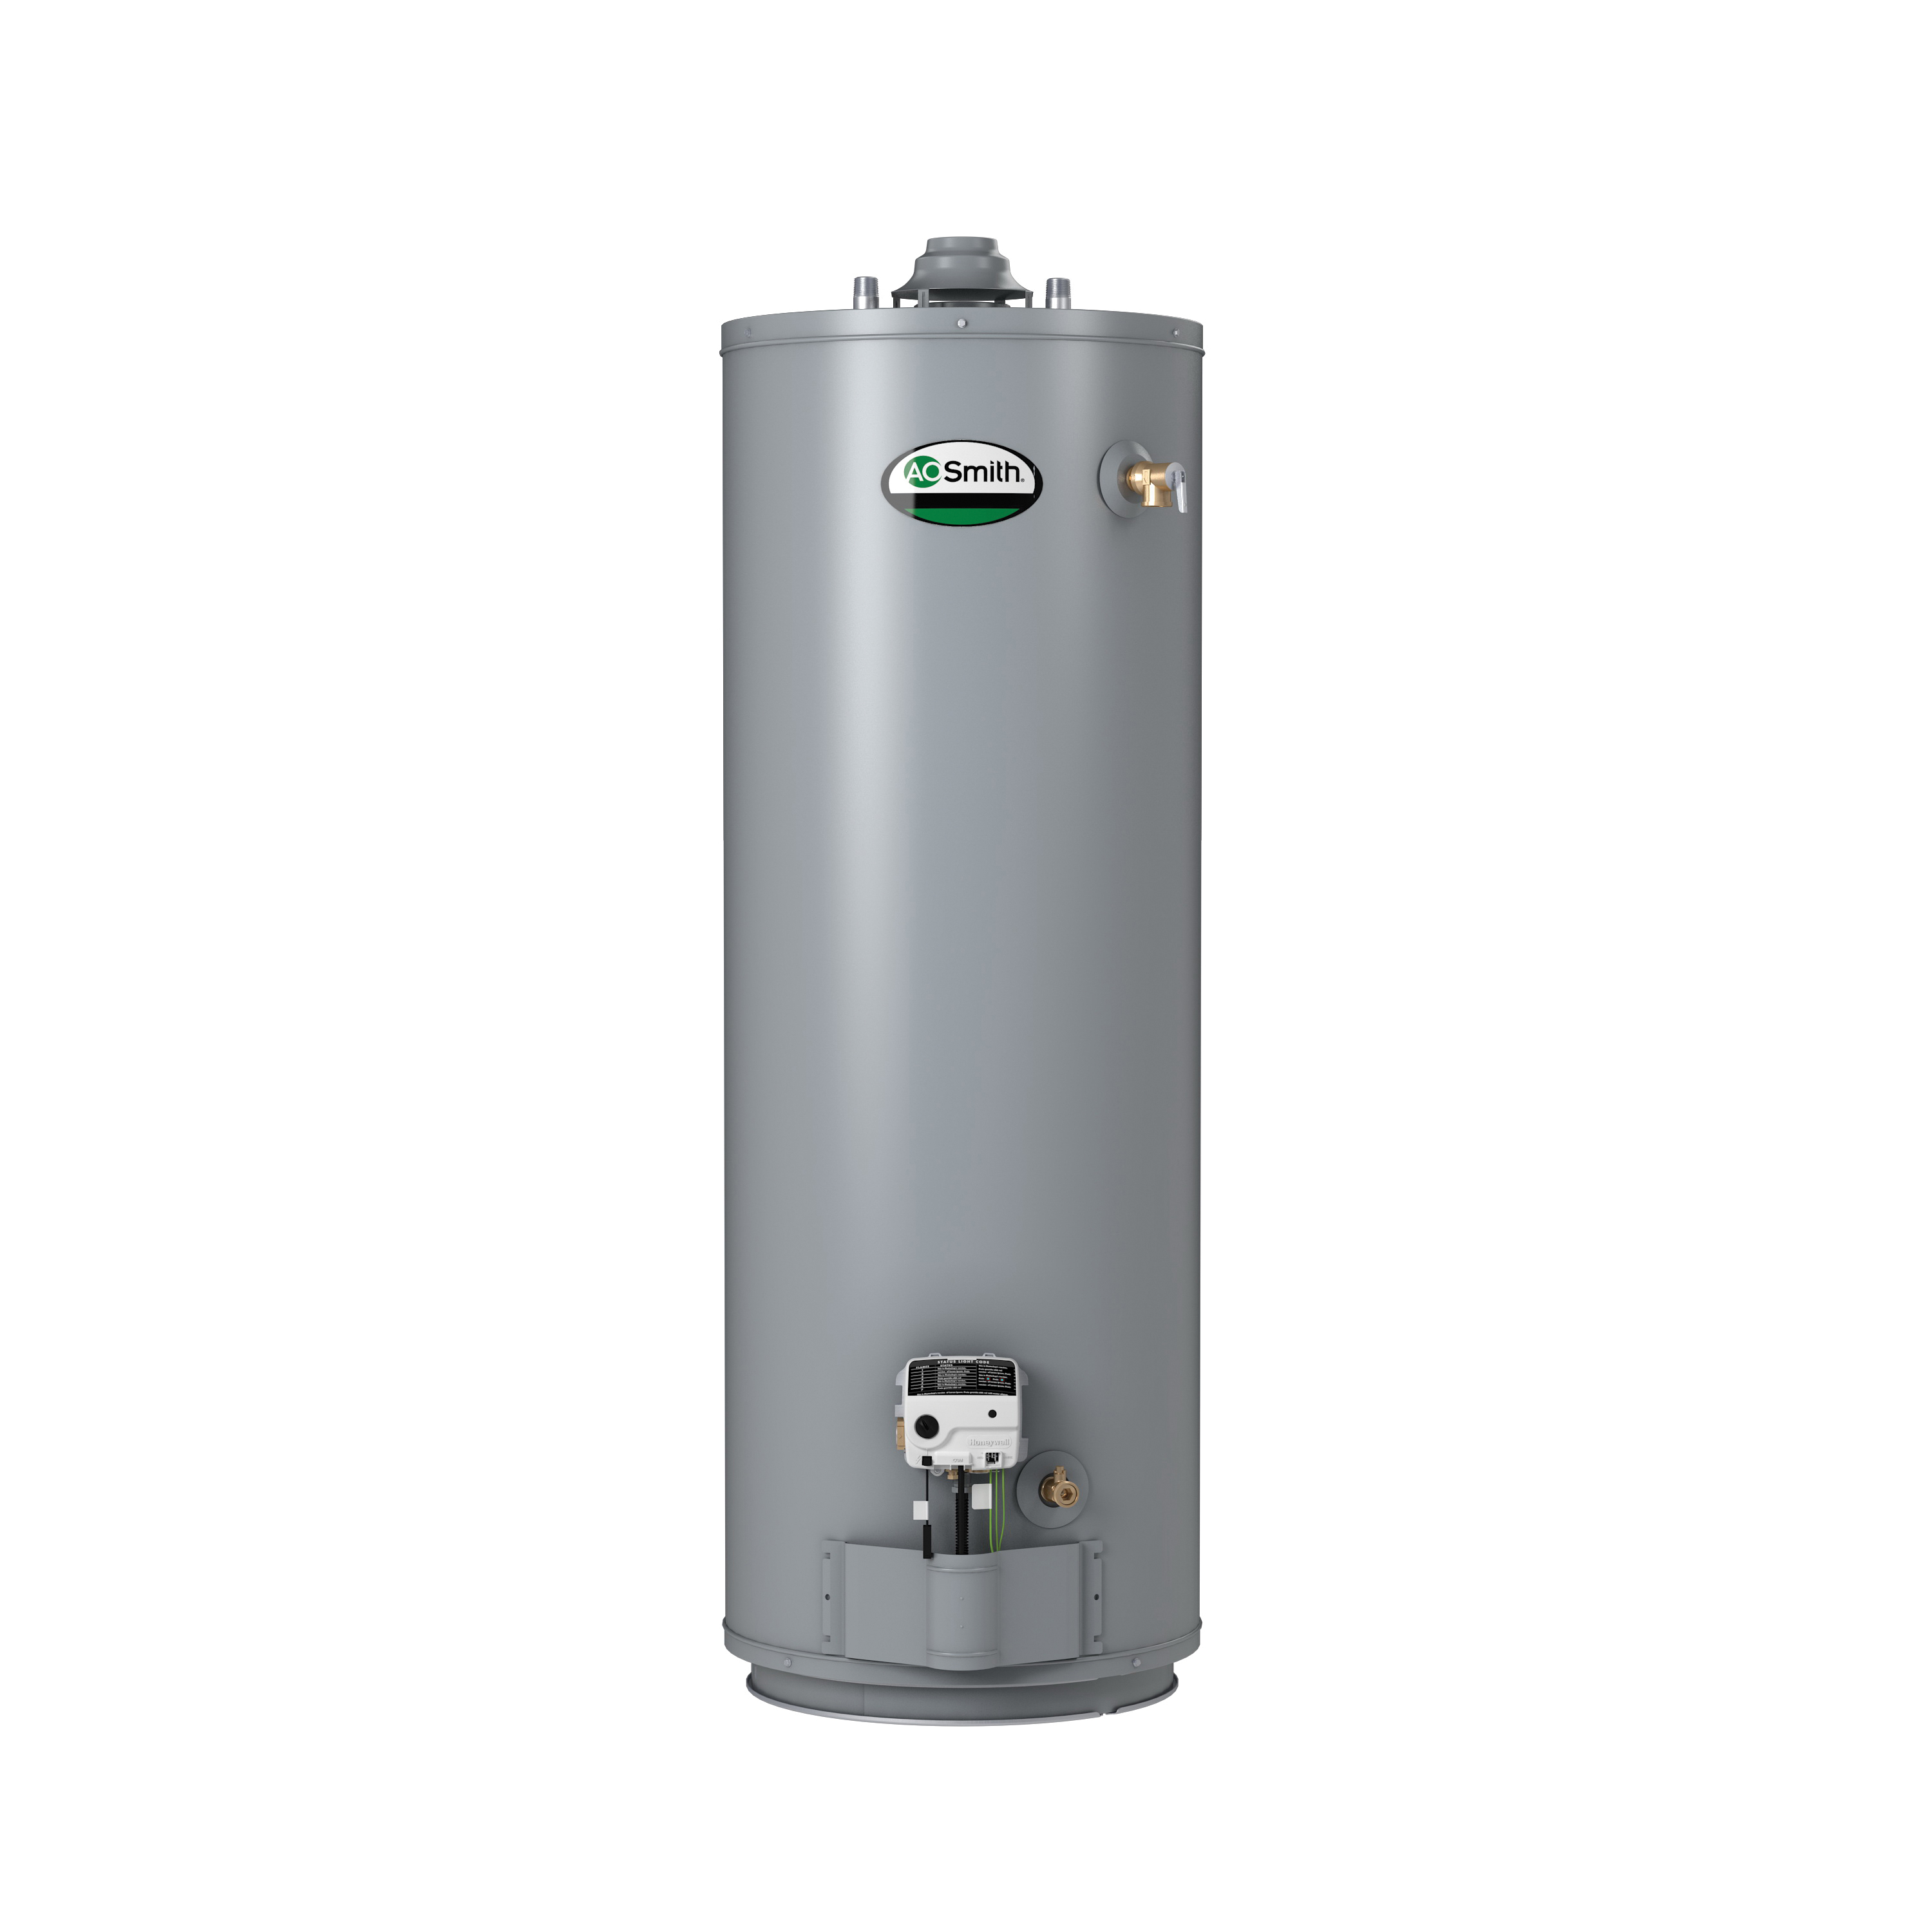 AO Smith® ProLine® 100210351 GUC-50 Gas Water Heater, 40000 Btu/hr Heating, 50 gal Tank, Natural Gas Fuel, Atmospheric Vent, 42 gph at 90 deg F Recovery, Tall